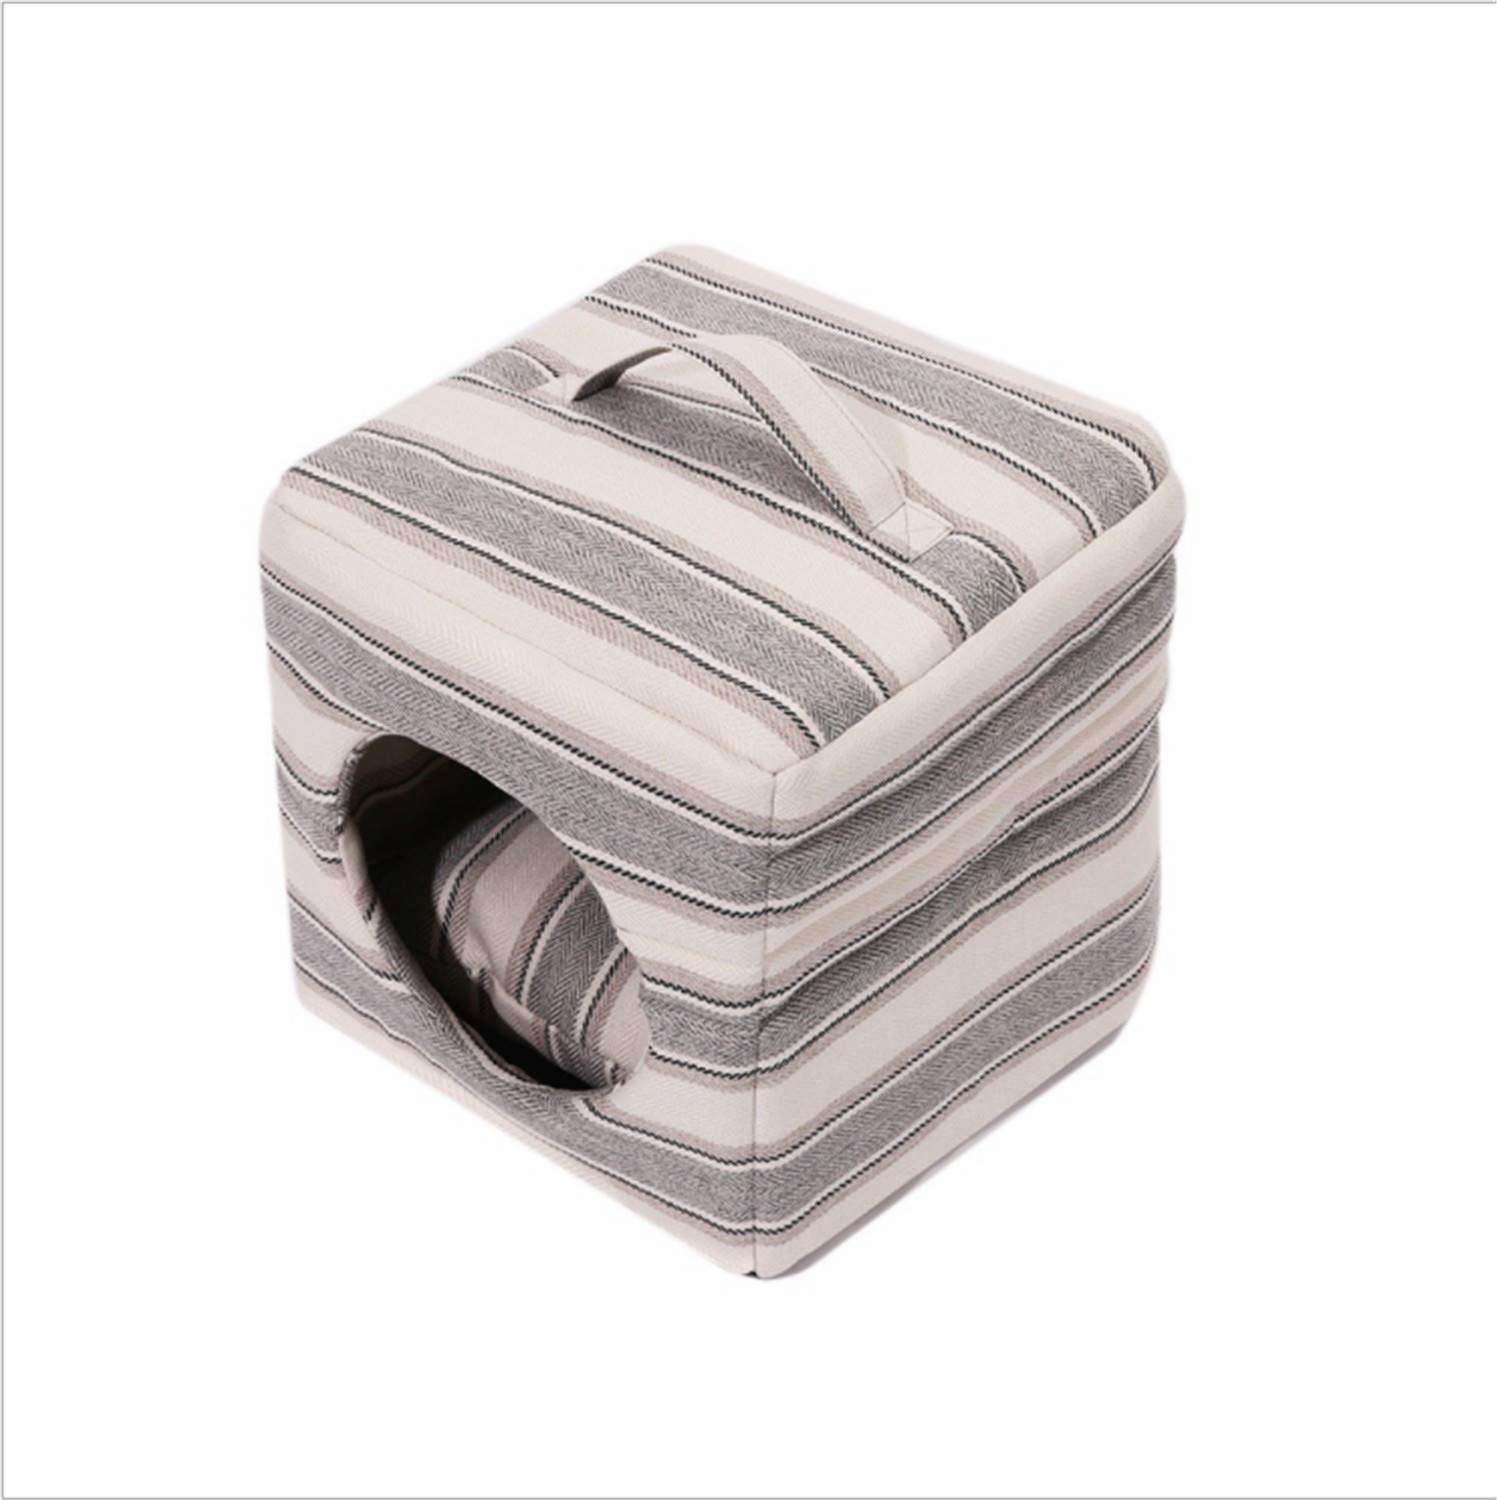 A Dog Bed,Square Kennel Stripe Printing Waterproof Oxford Cloth Medium Large Dog Cat Nest Foldable Detachable House